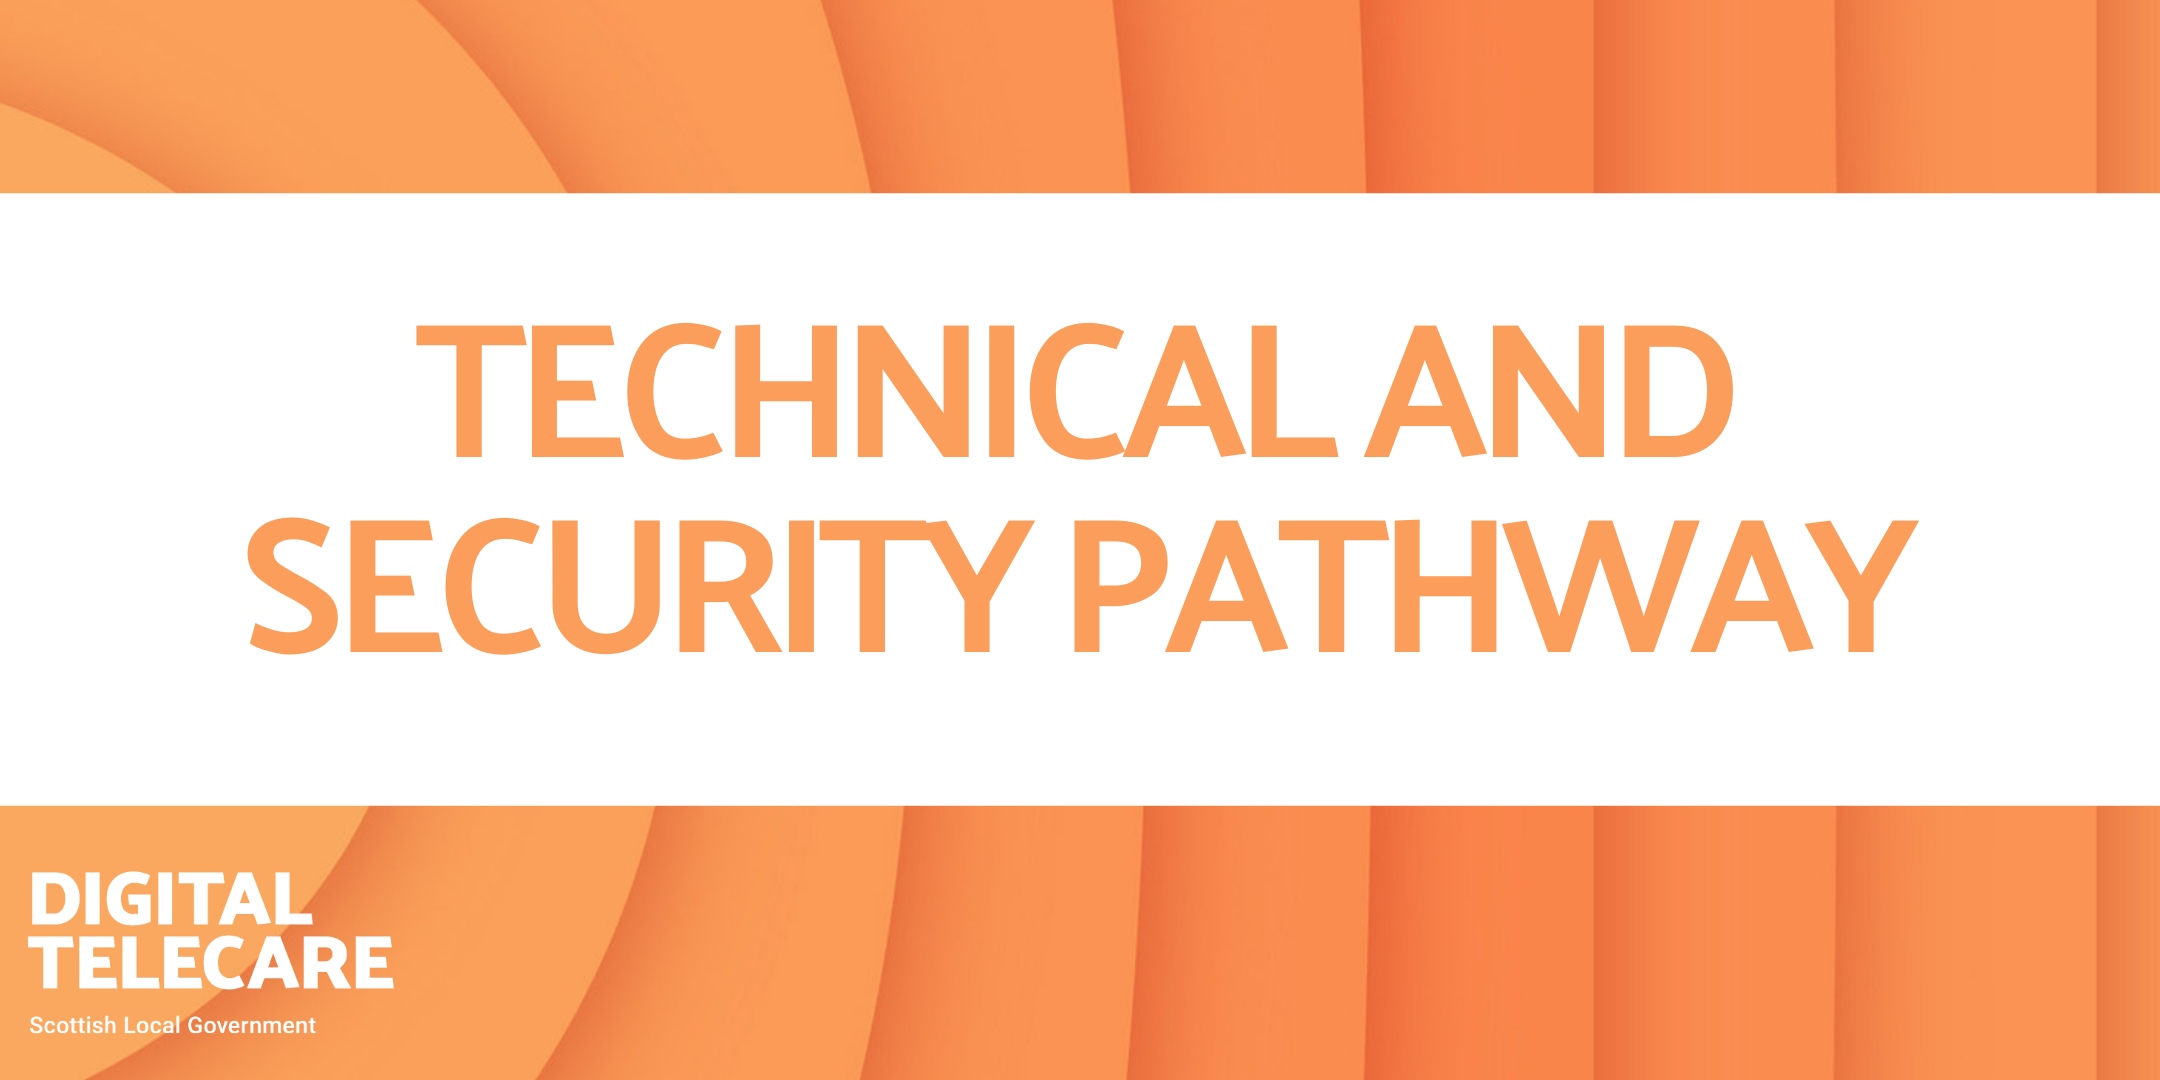 OUR BRAND NEW TECHNICAL AND SECURITY PATHWAY